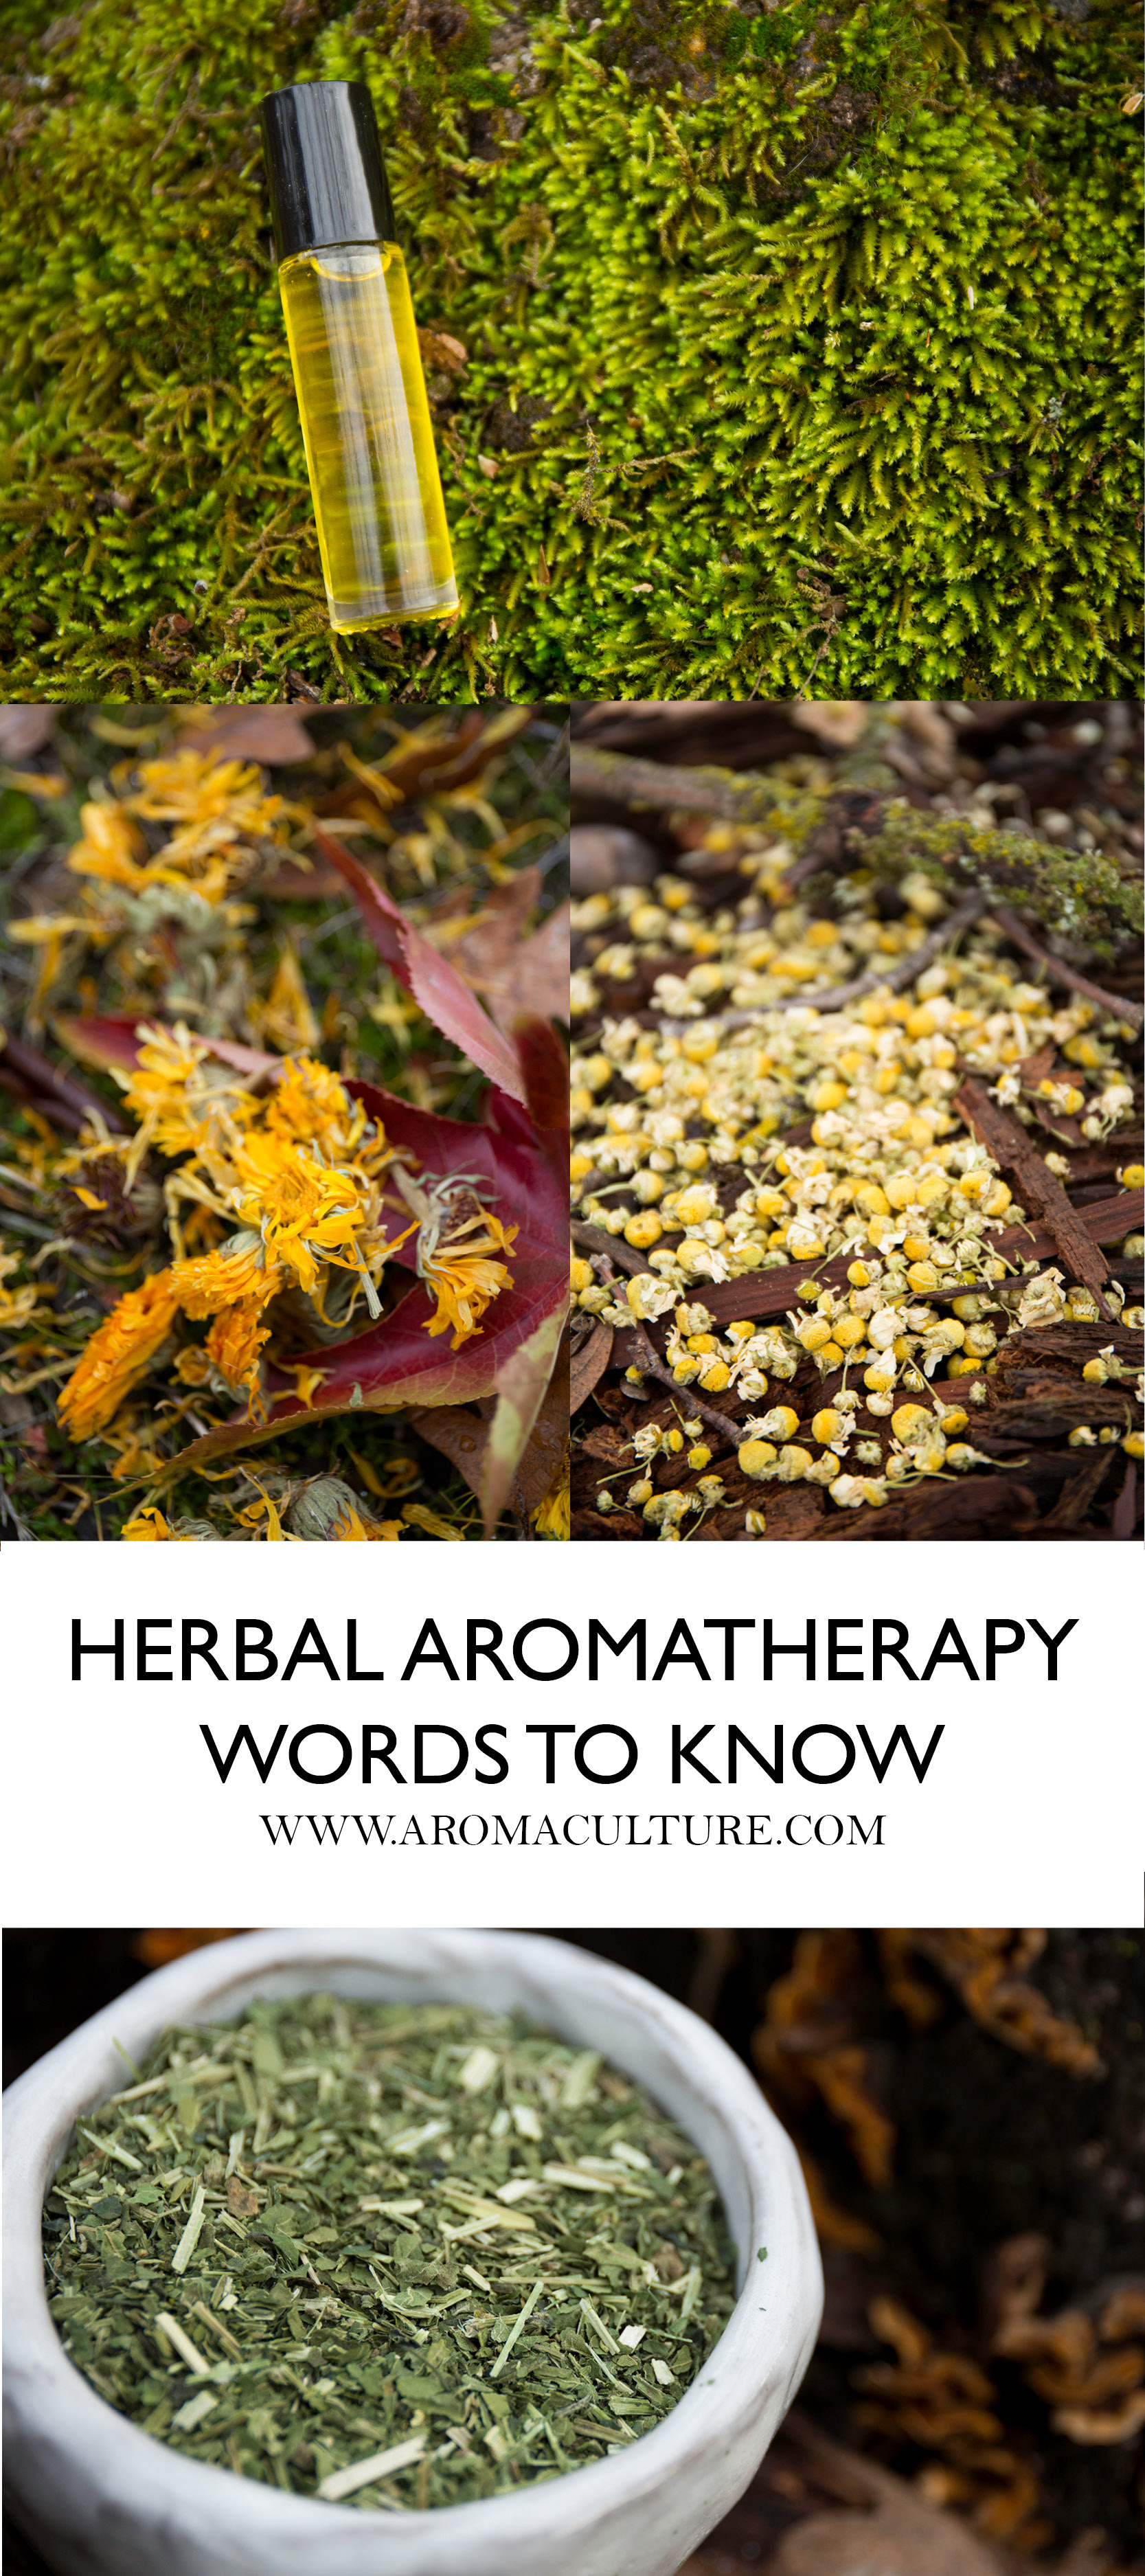 HERBAL AROMATHERAPY WORDS TO KNOW.jpg